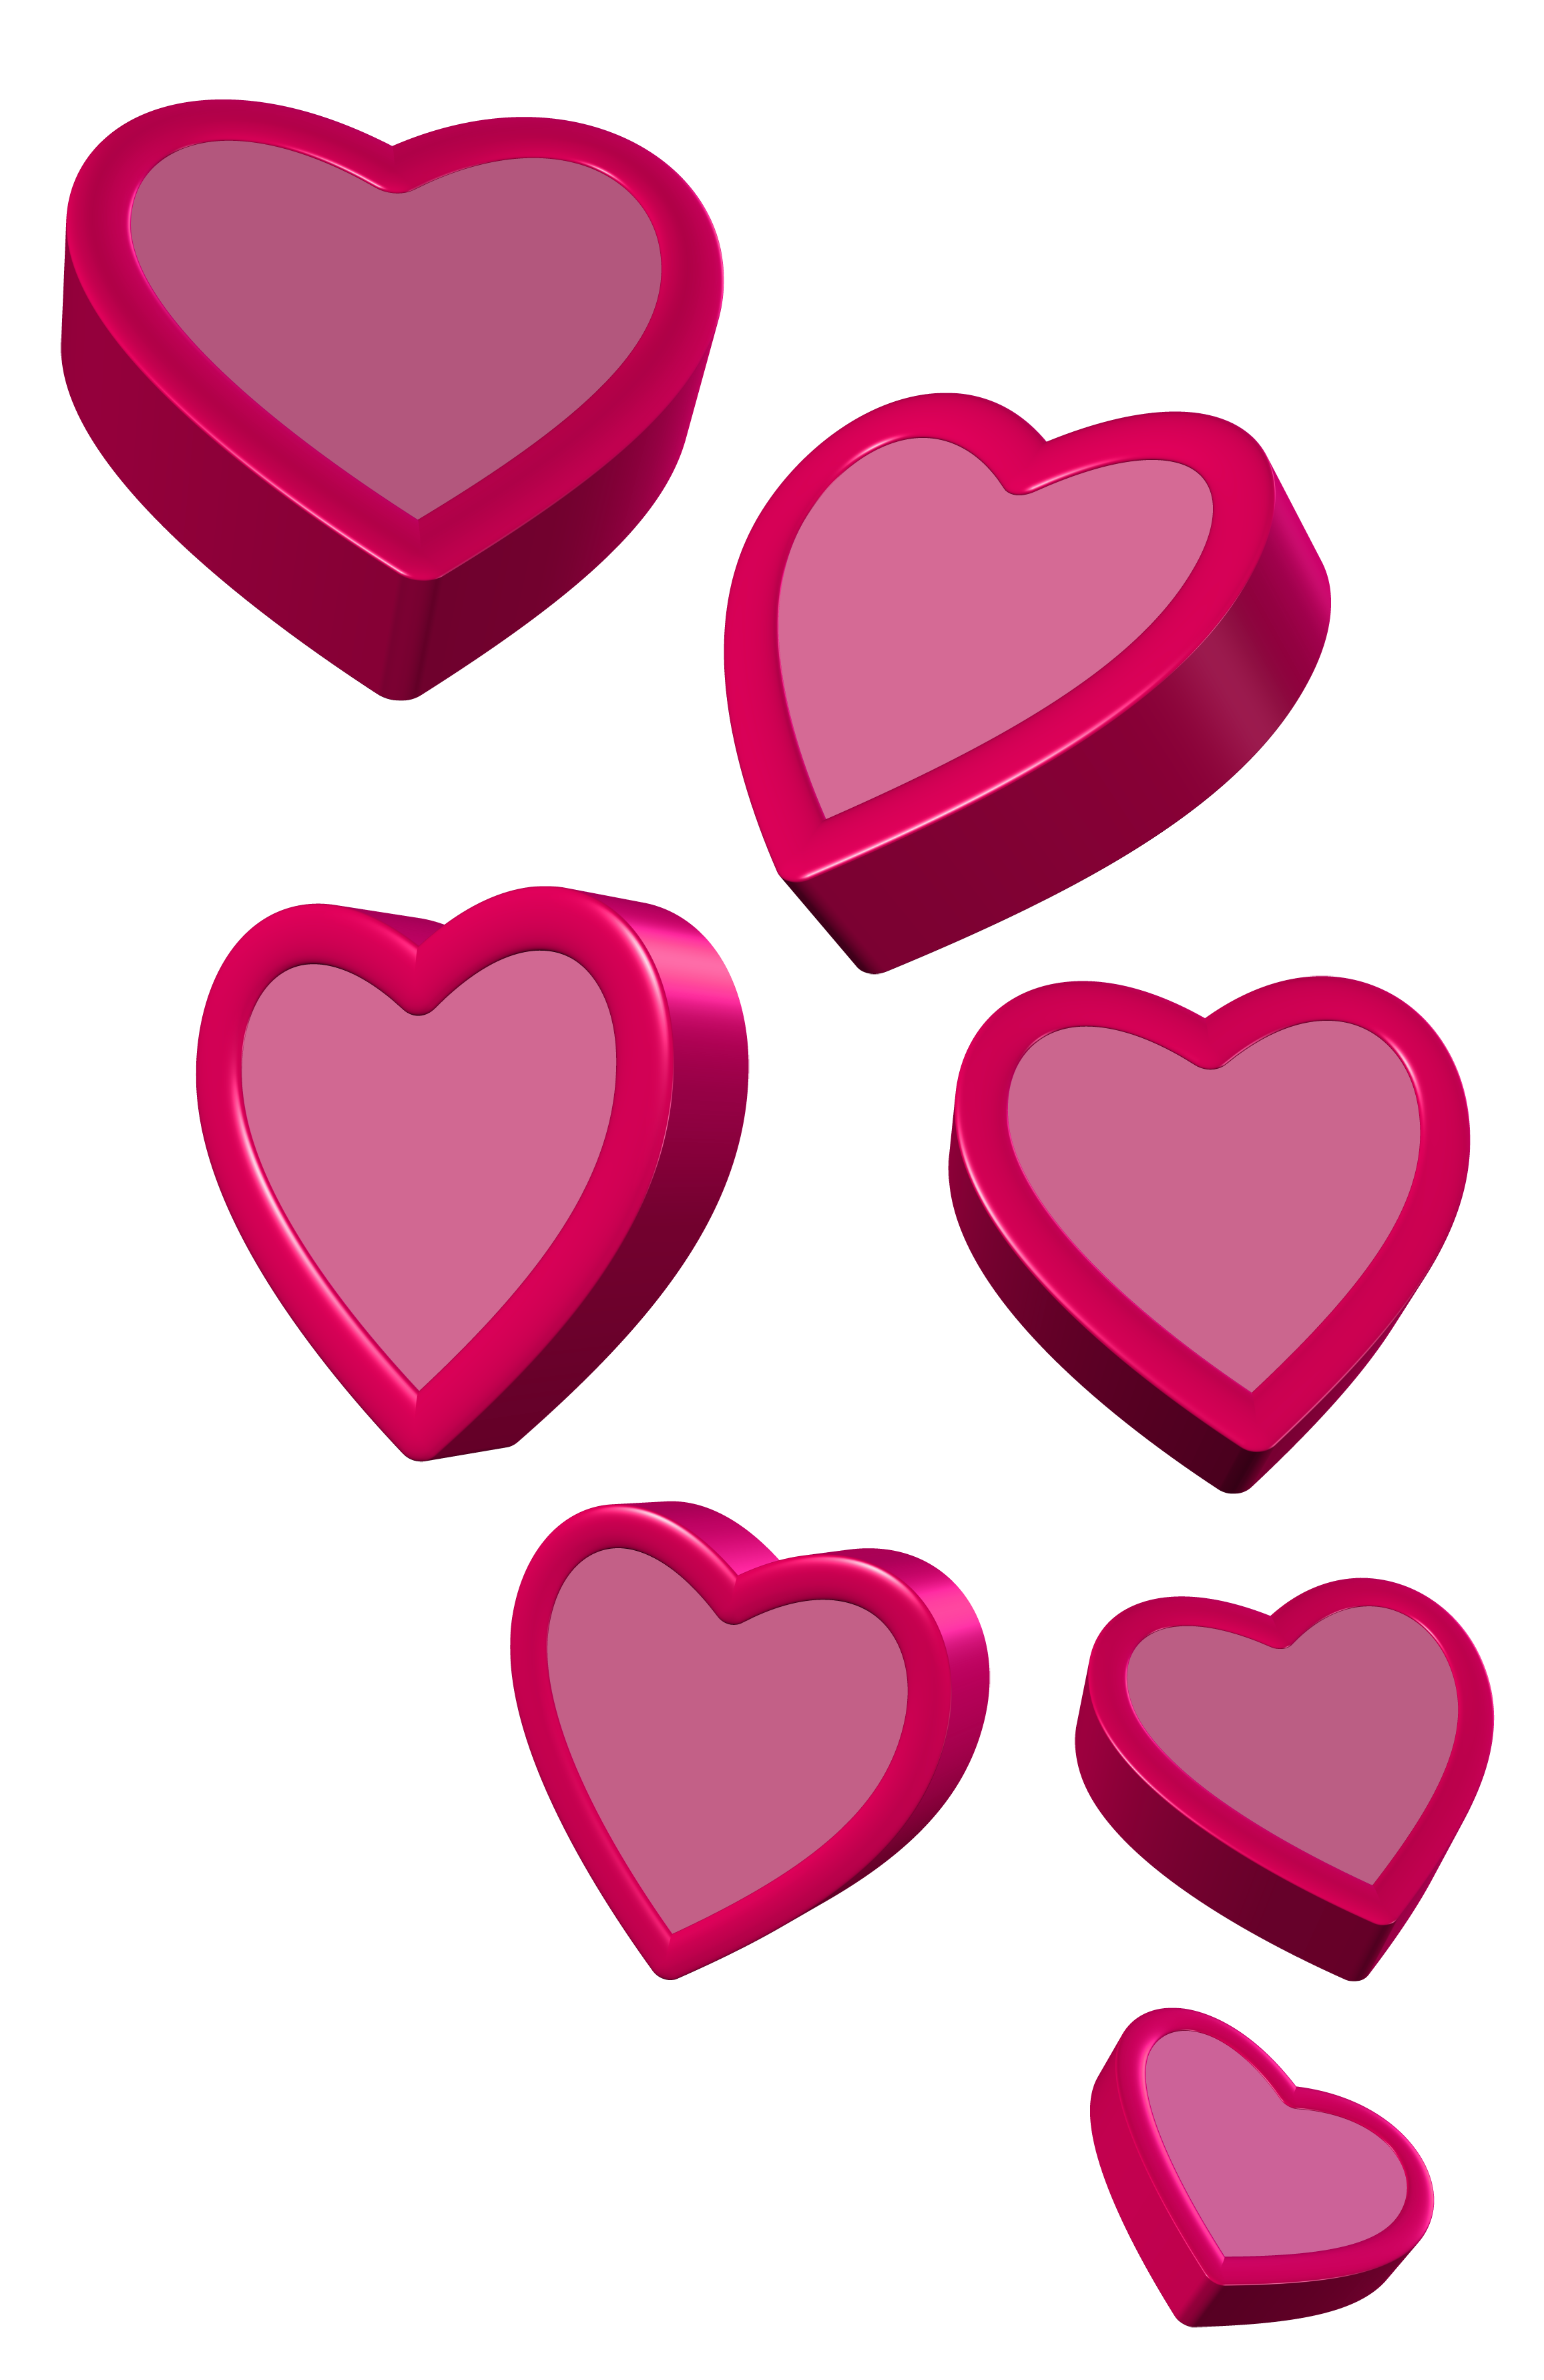 Hearts clipart pink. Png picture gallery yopriceville